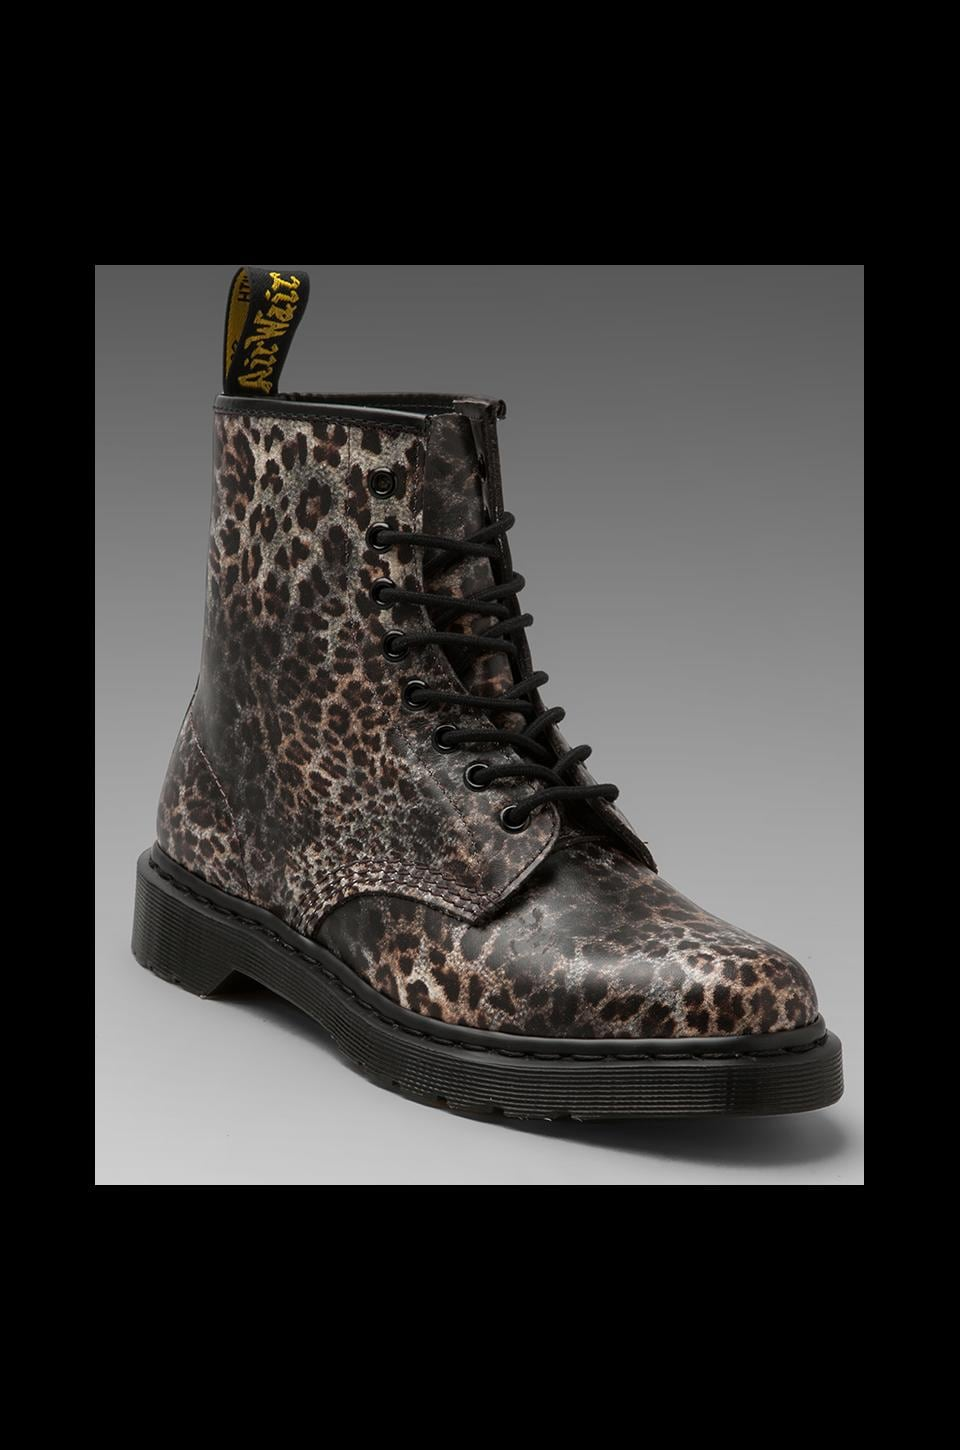 Dr. Martens 1460 8-Eye Boot in Leopard Print